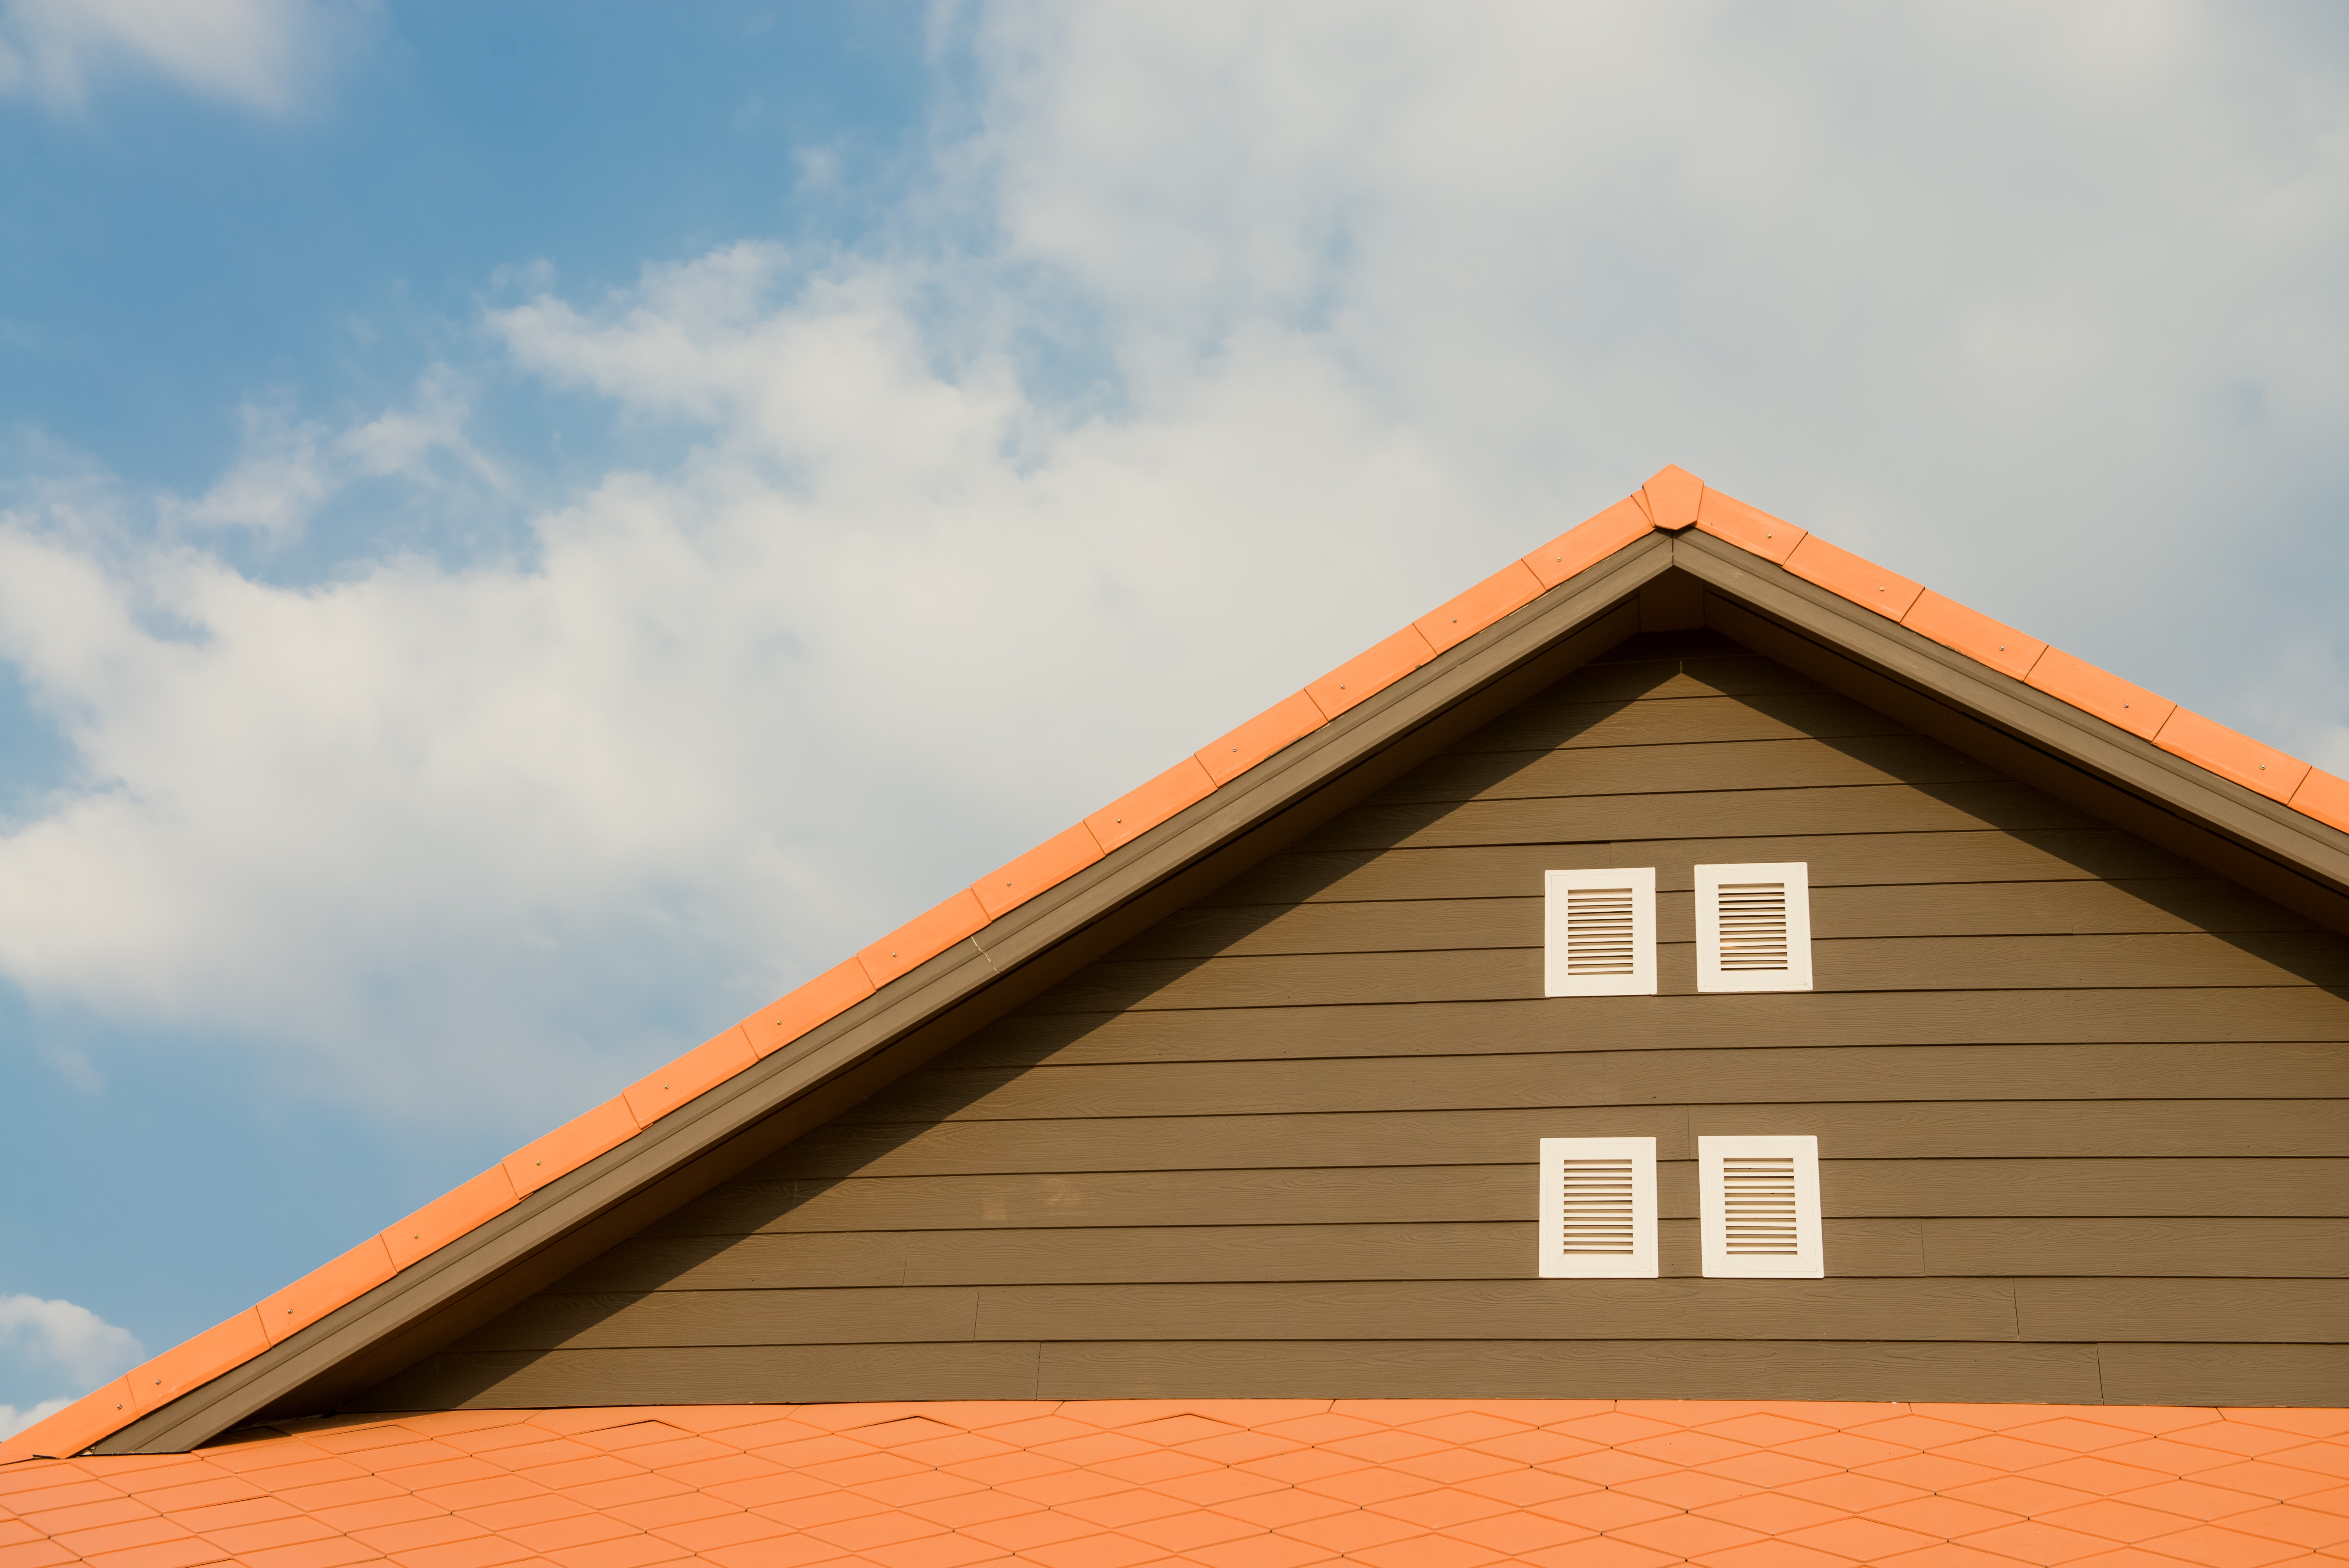 A traditional gable roof